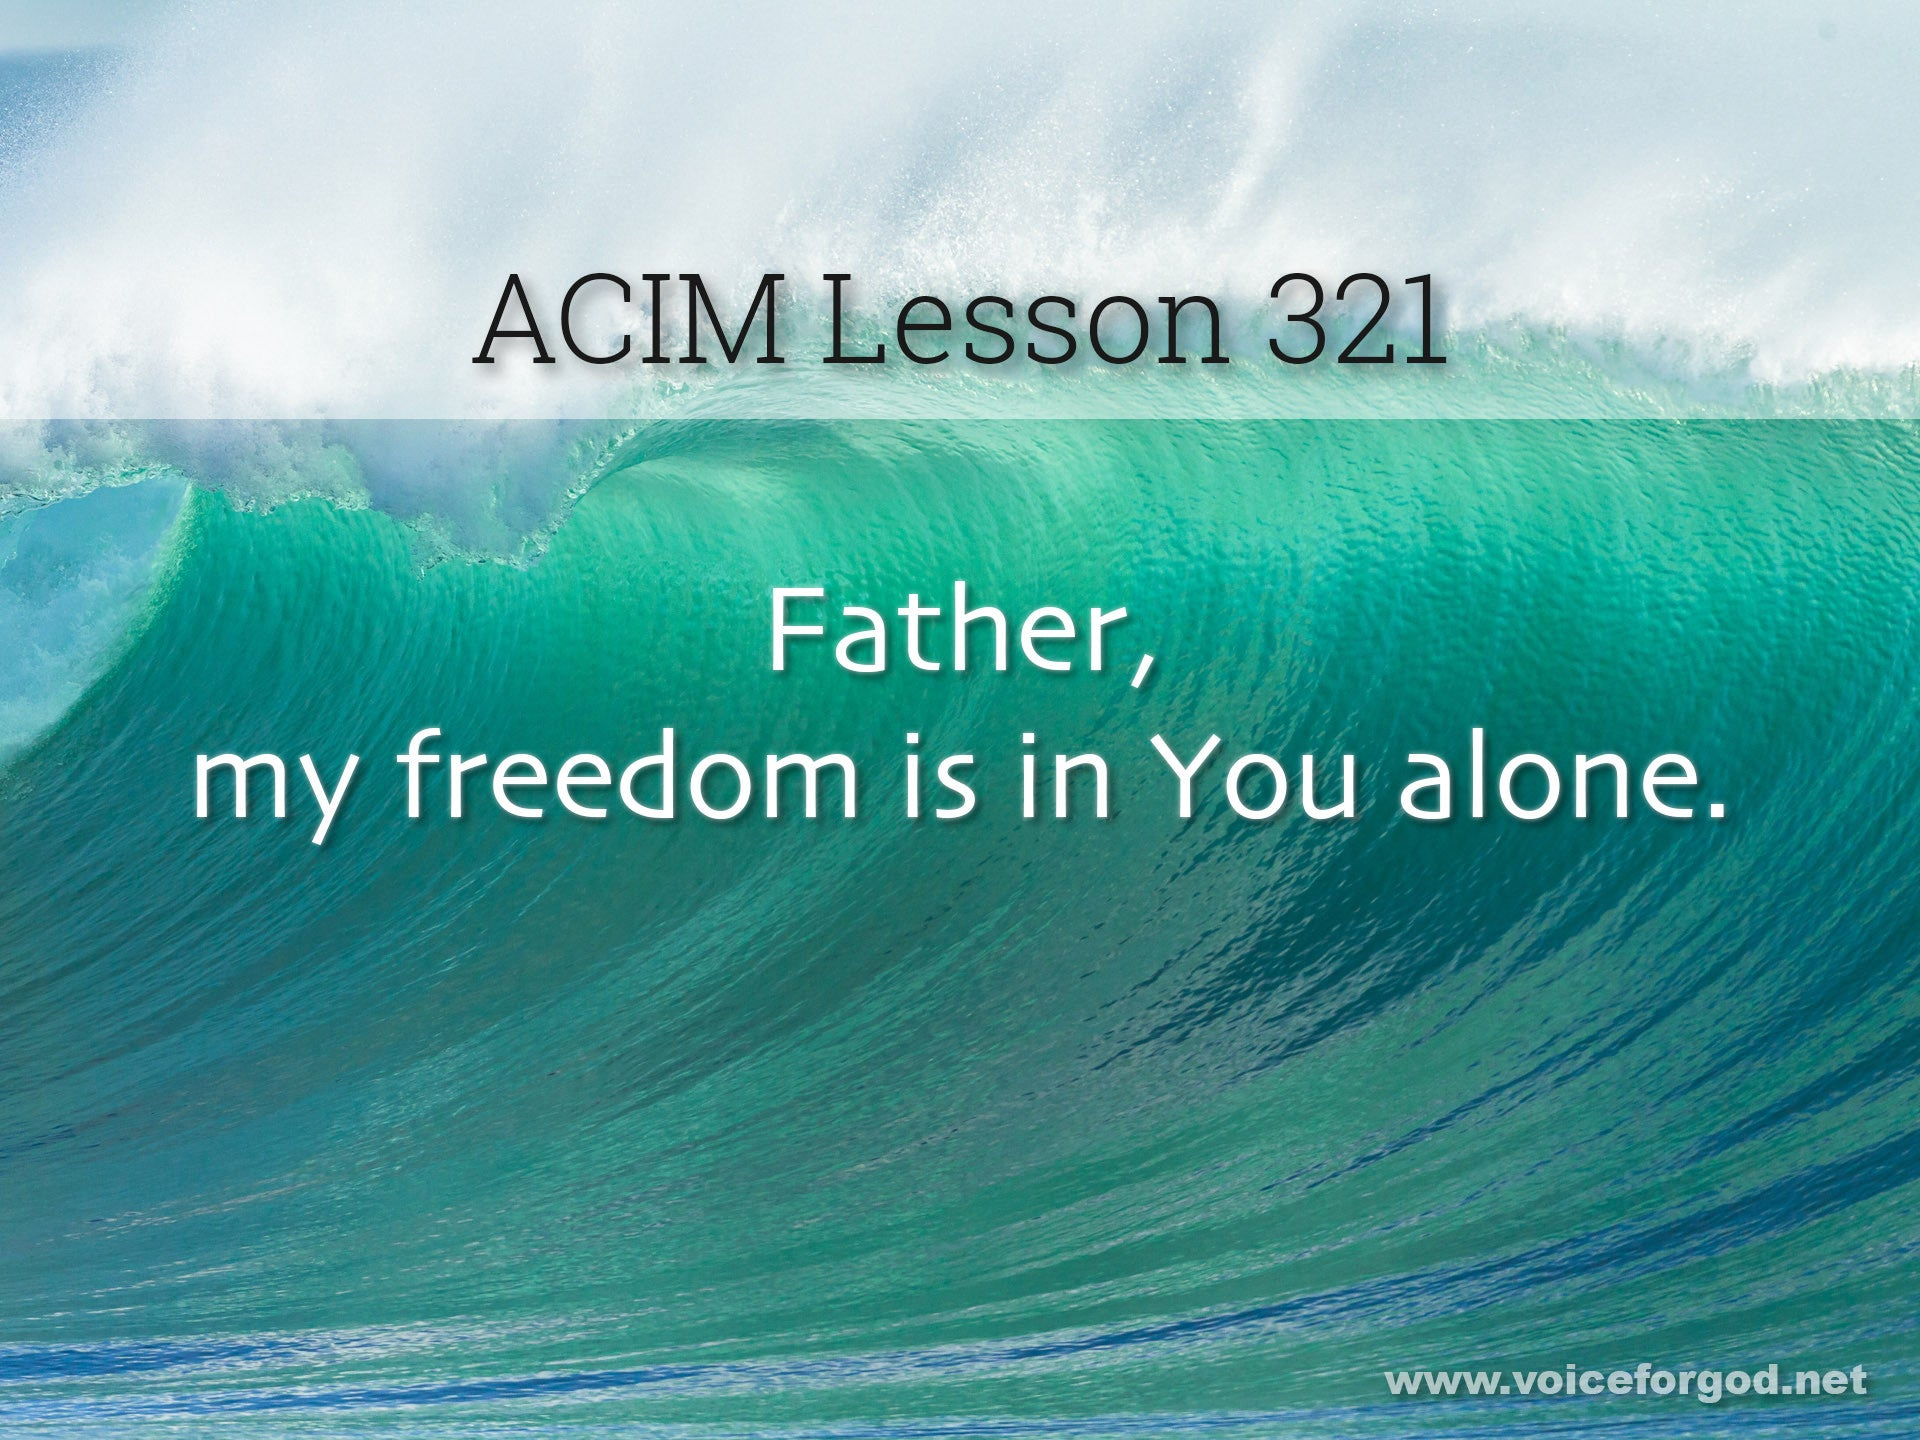 ACIM Lesson 321 - A Course in Miracles Workbook Lesson 321